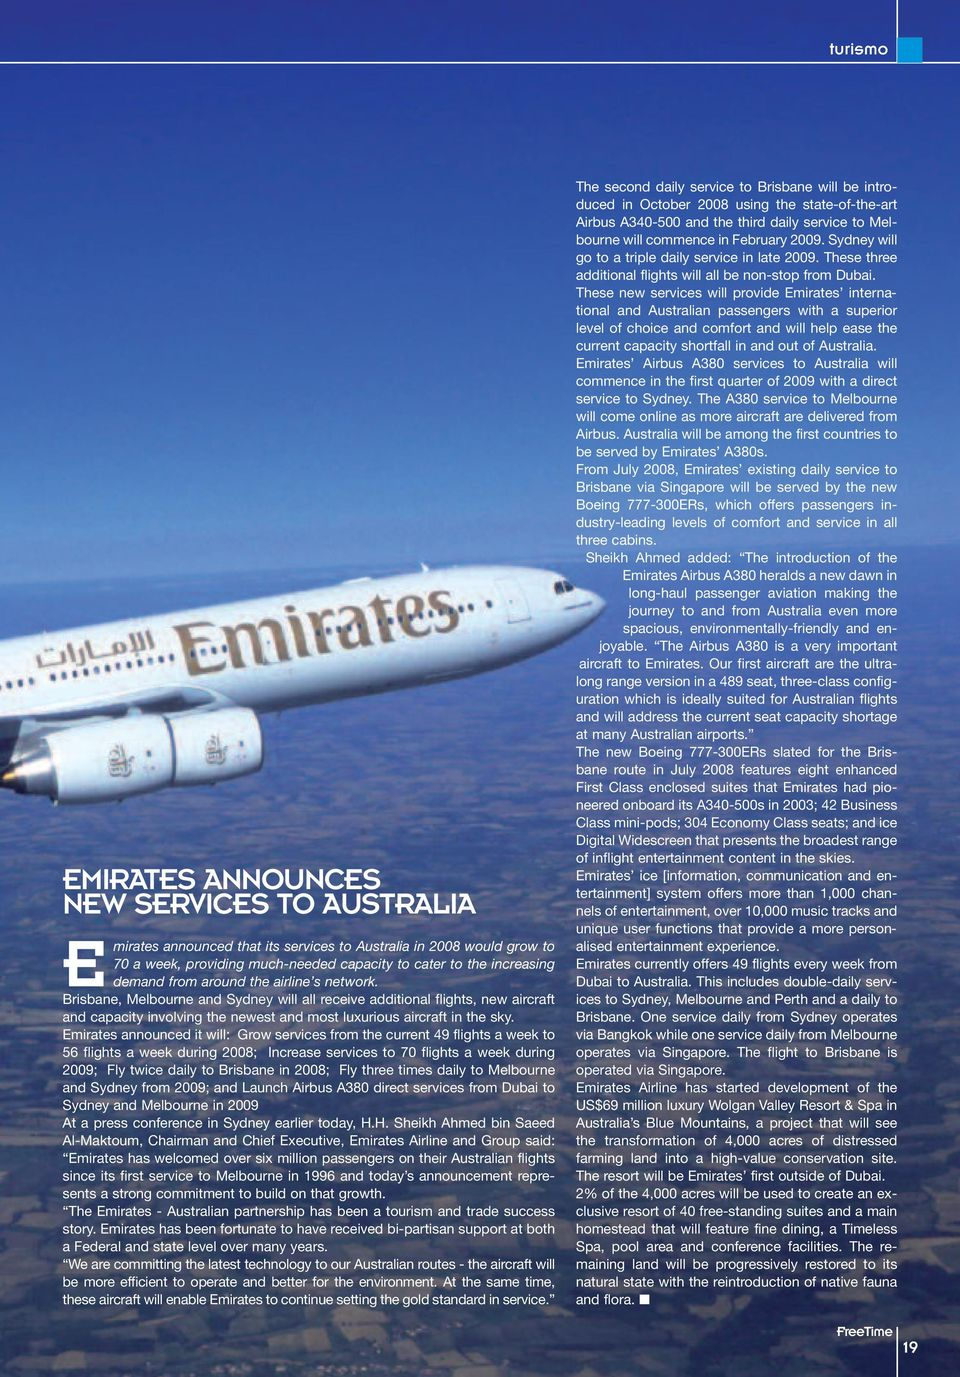 Emirates announced it will: Grow services from the current 49 flights a week to 56 flights a week during 2008; Increase services to 70 flights a week during 2009; Fly twice daily to Brisbane in 2008;